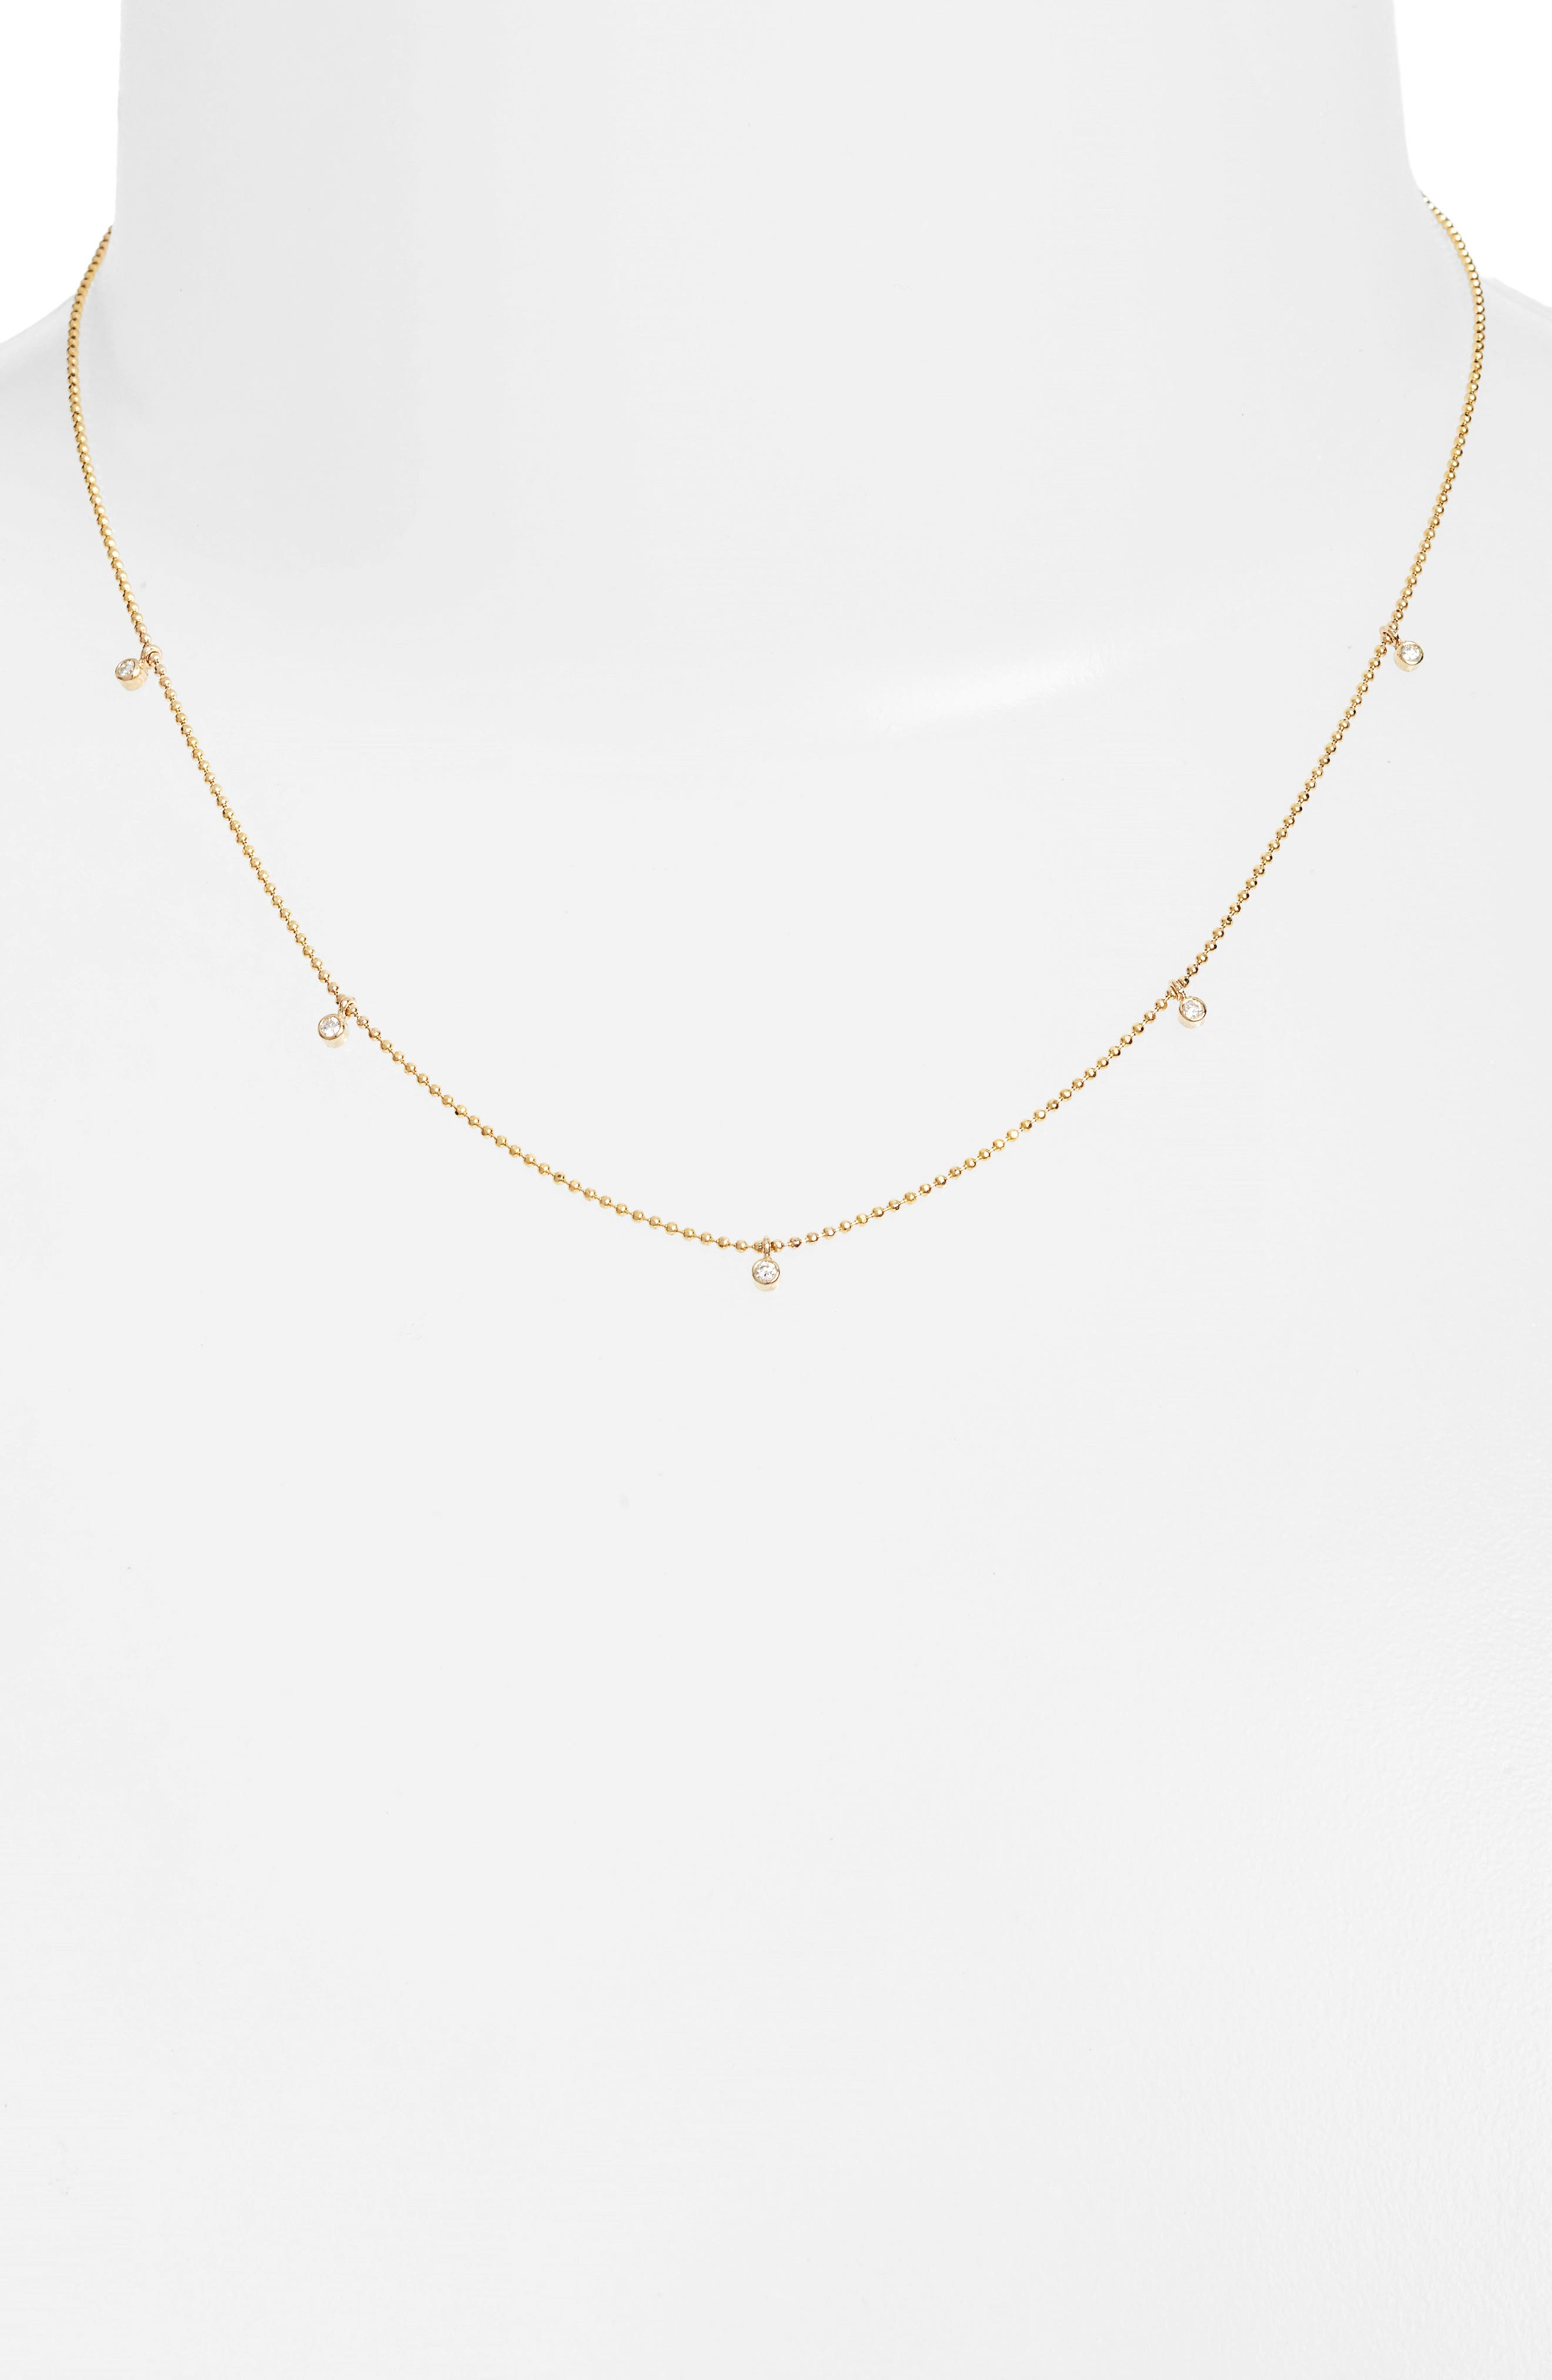 Main Image - Zoë Chicco Diamond Charm Necklace (Nordstrom Exclusive)